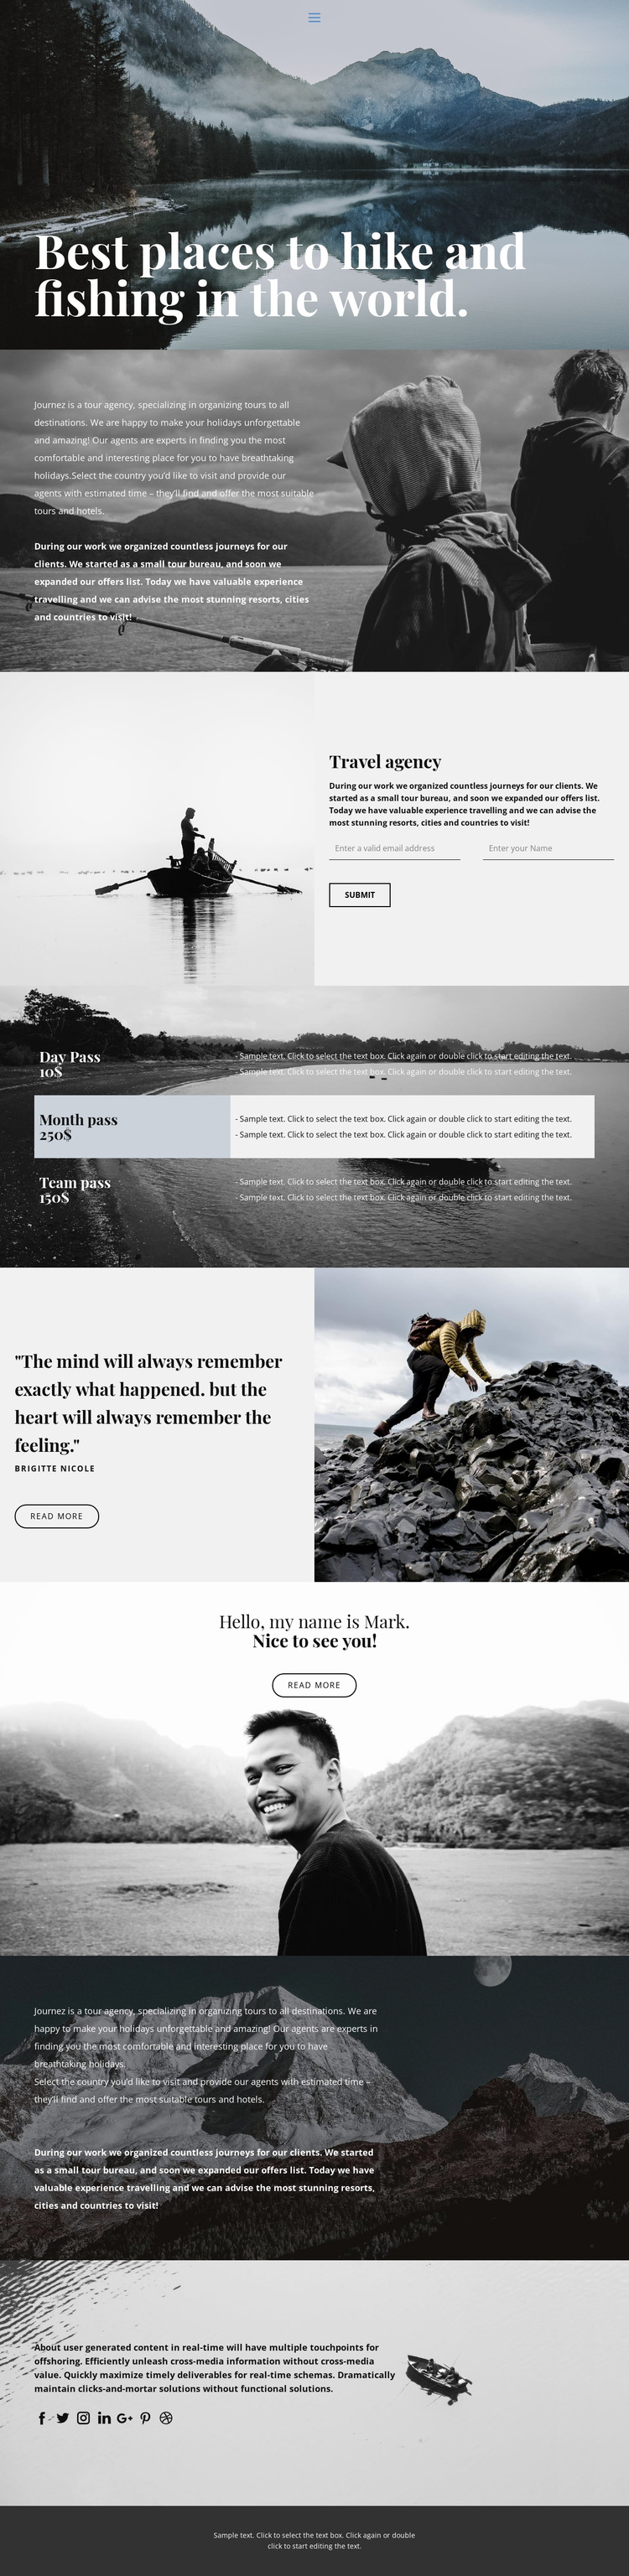 Best places for hiking and fishing HTML5 Template